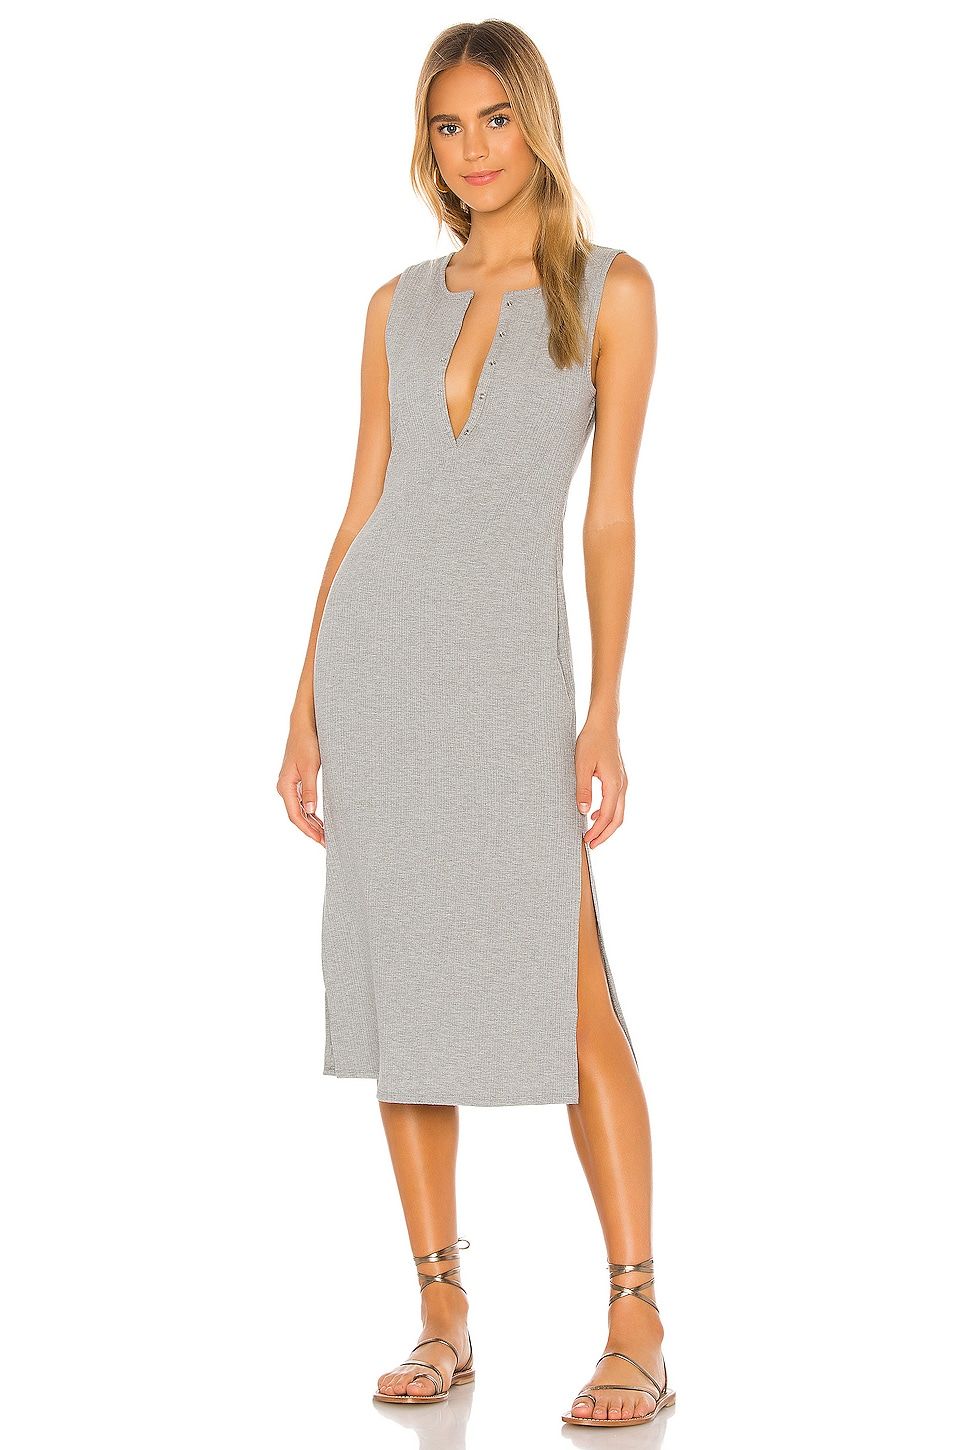 Day Shirt Sleeveless Dress             BCBGeneration                                                                                                       CA$ 105.38 16